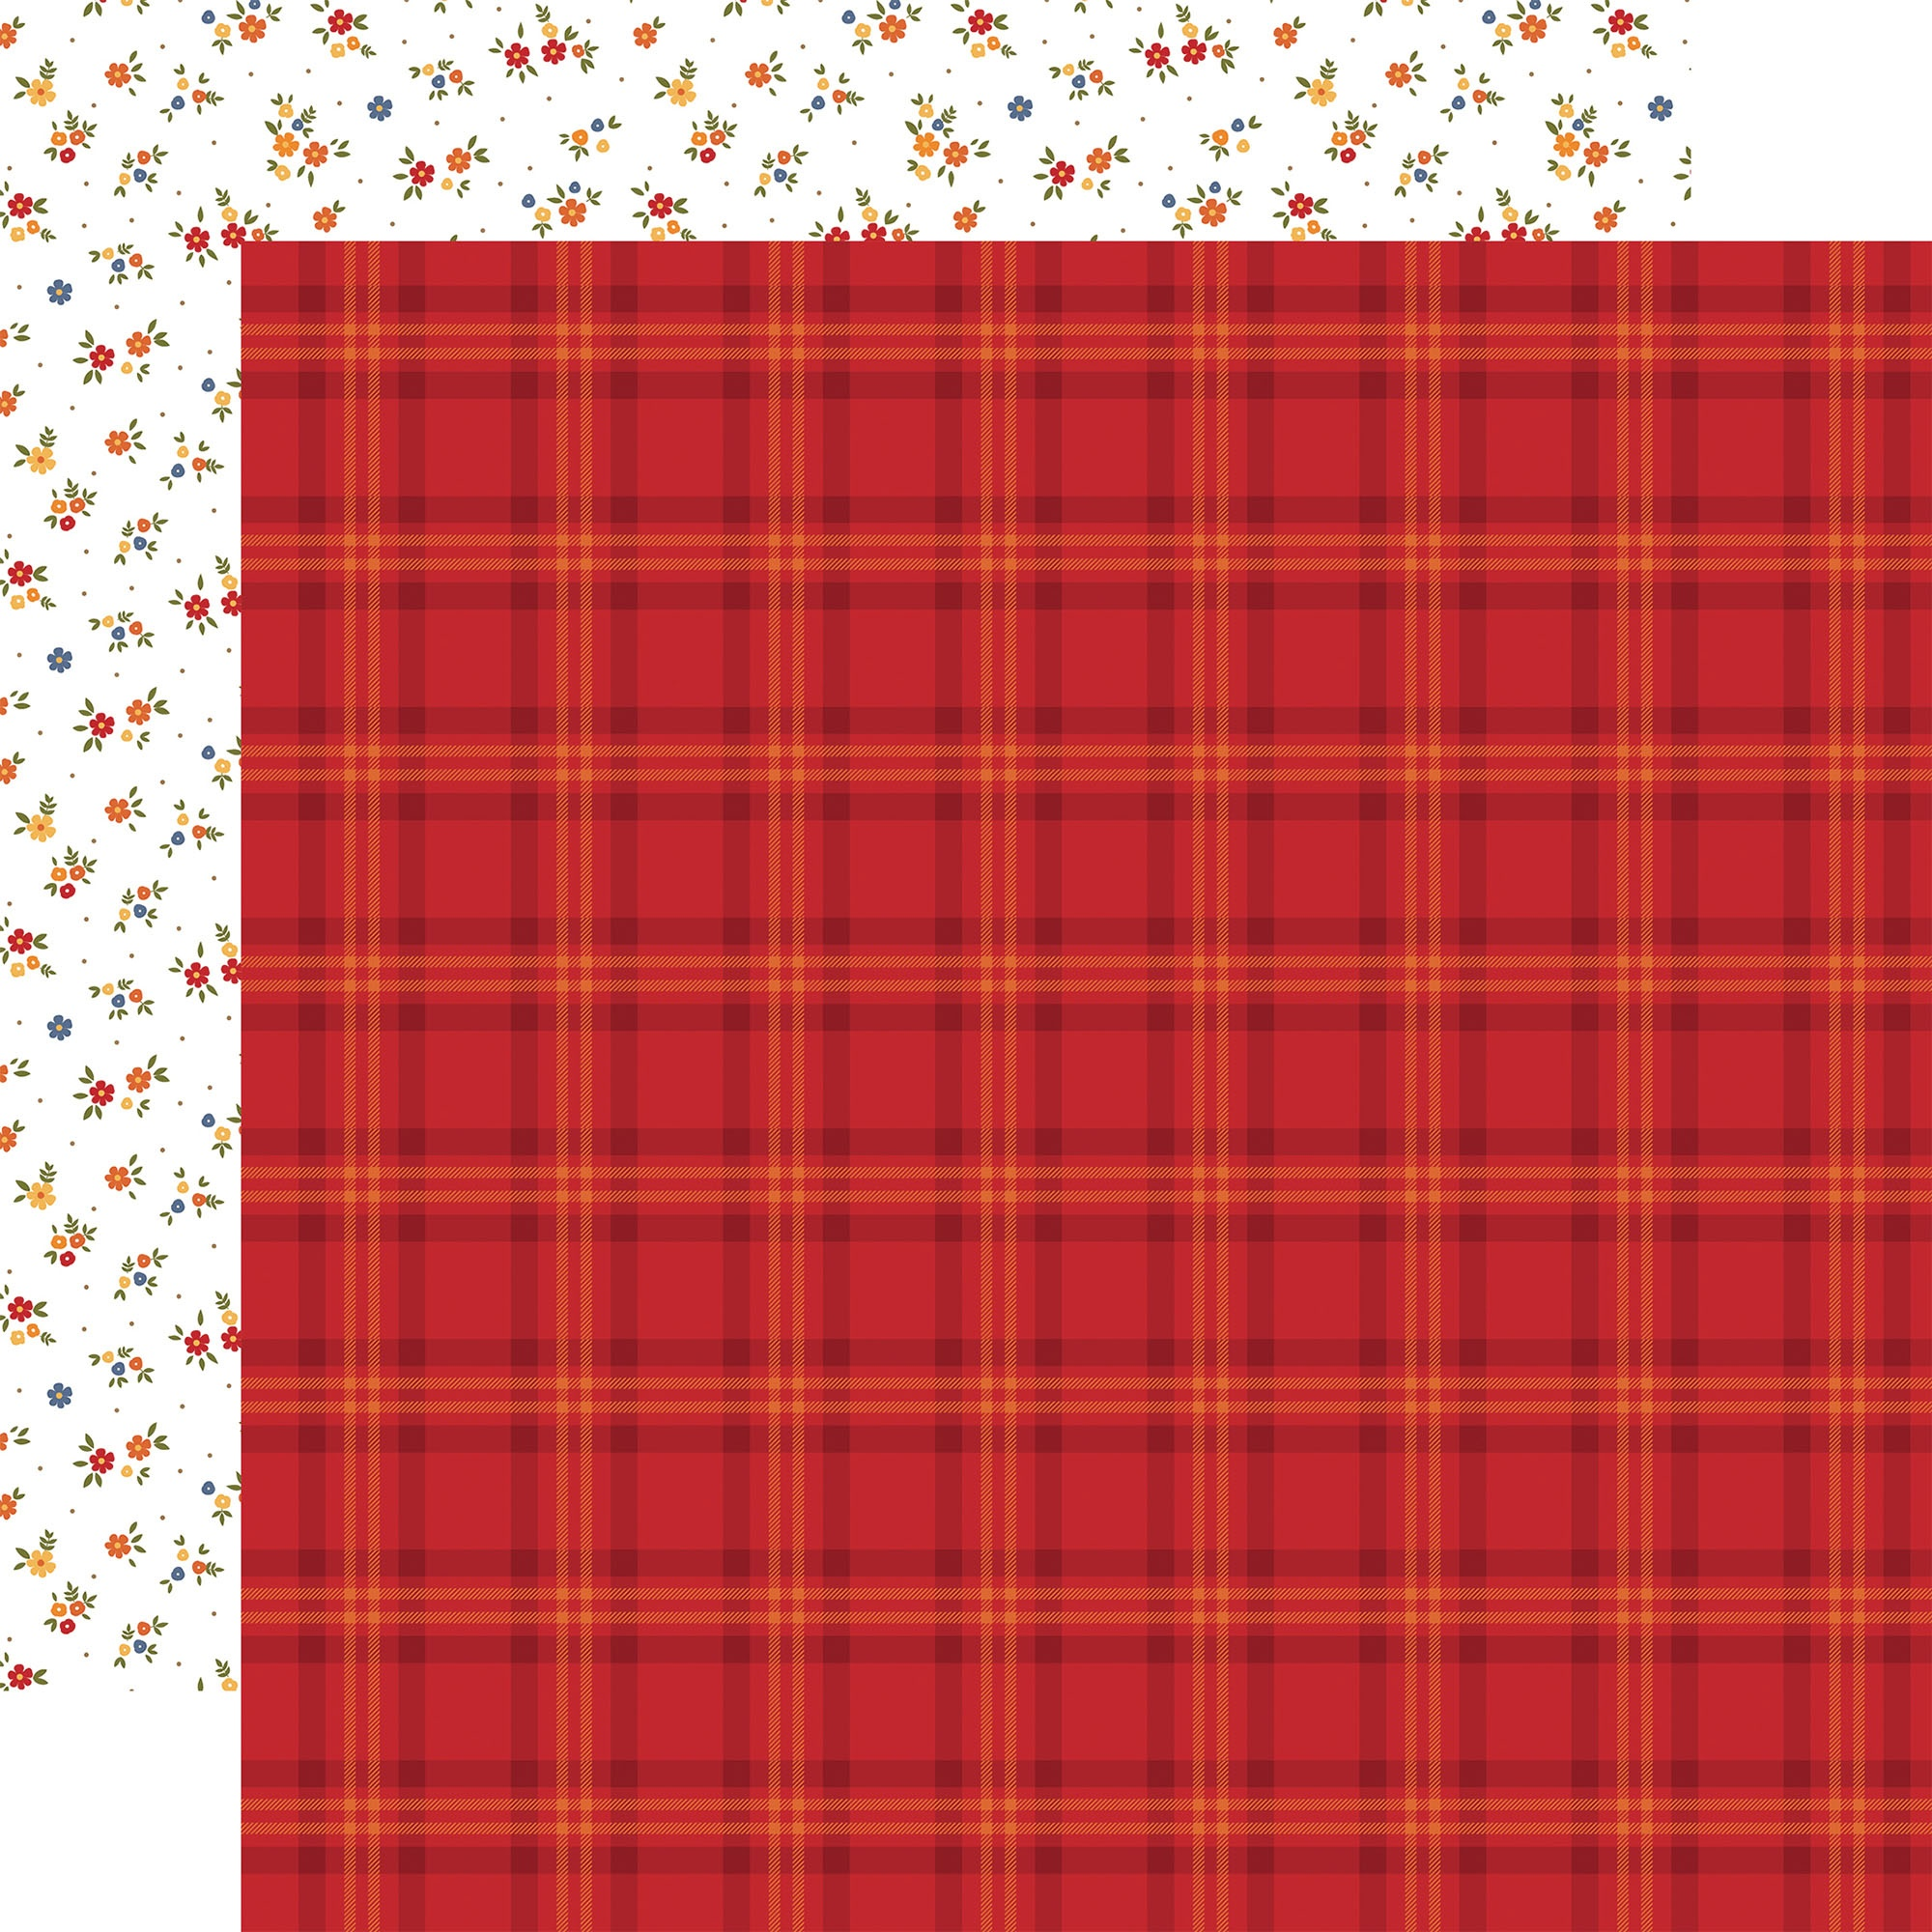 Echo Park - Fall - PATCH PLAID - 12x12 Double-Sided Paper